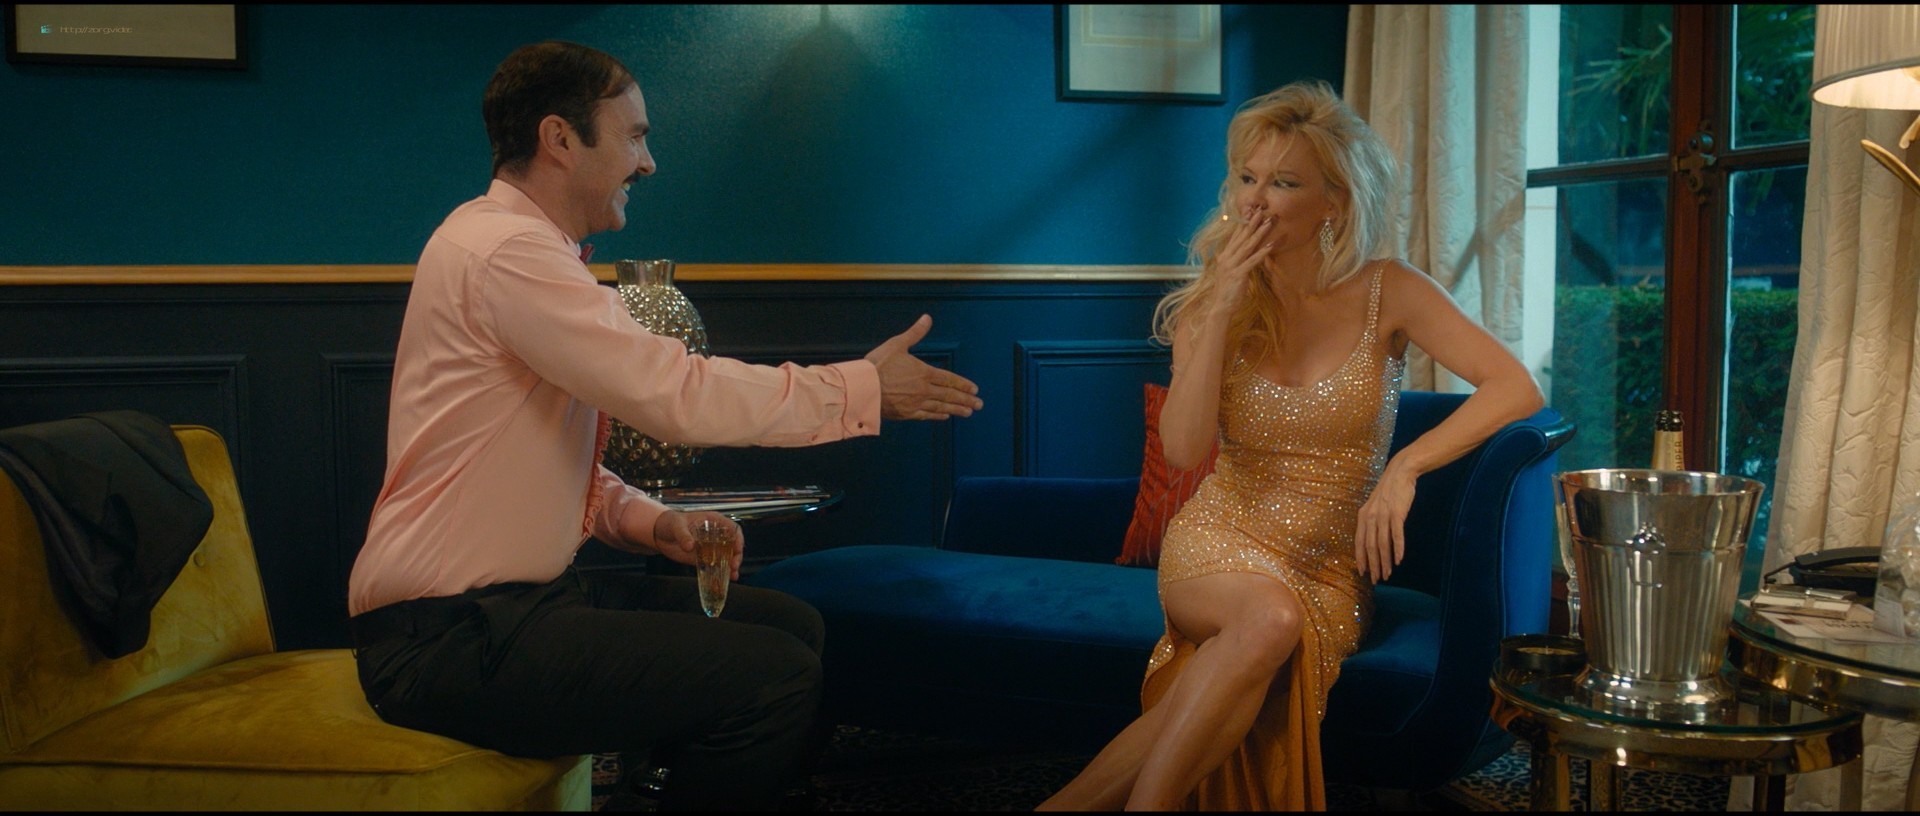 Pamela Anderson sexy Élodie Fontan and others hot - Nicky Larson et le parfum de Cupidon (2018) 1080p BluRay (9)